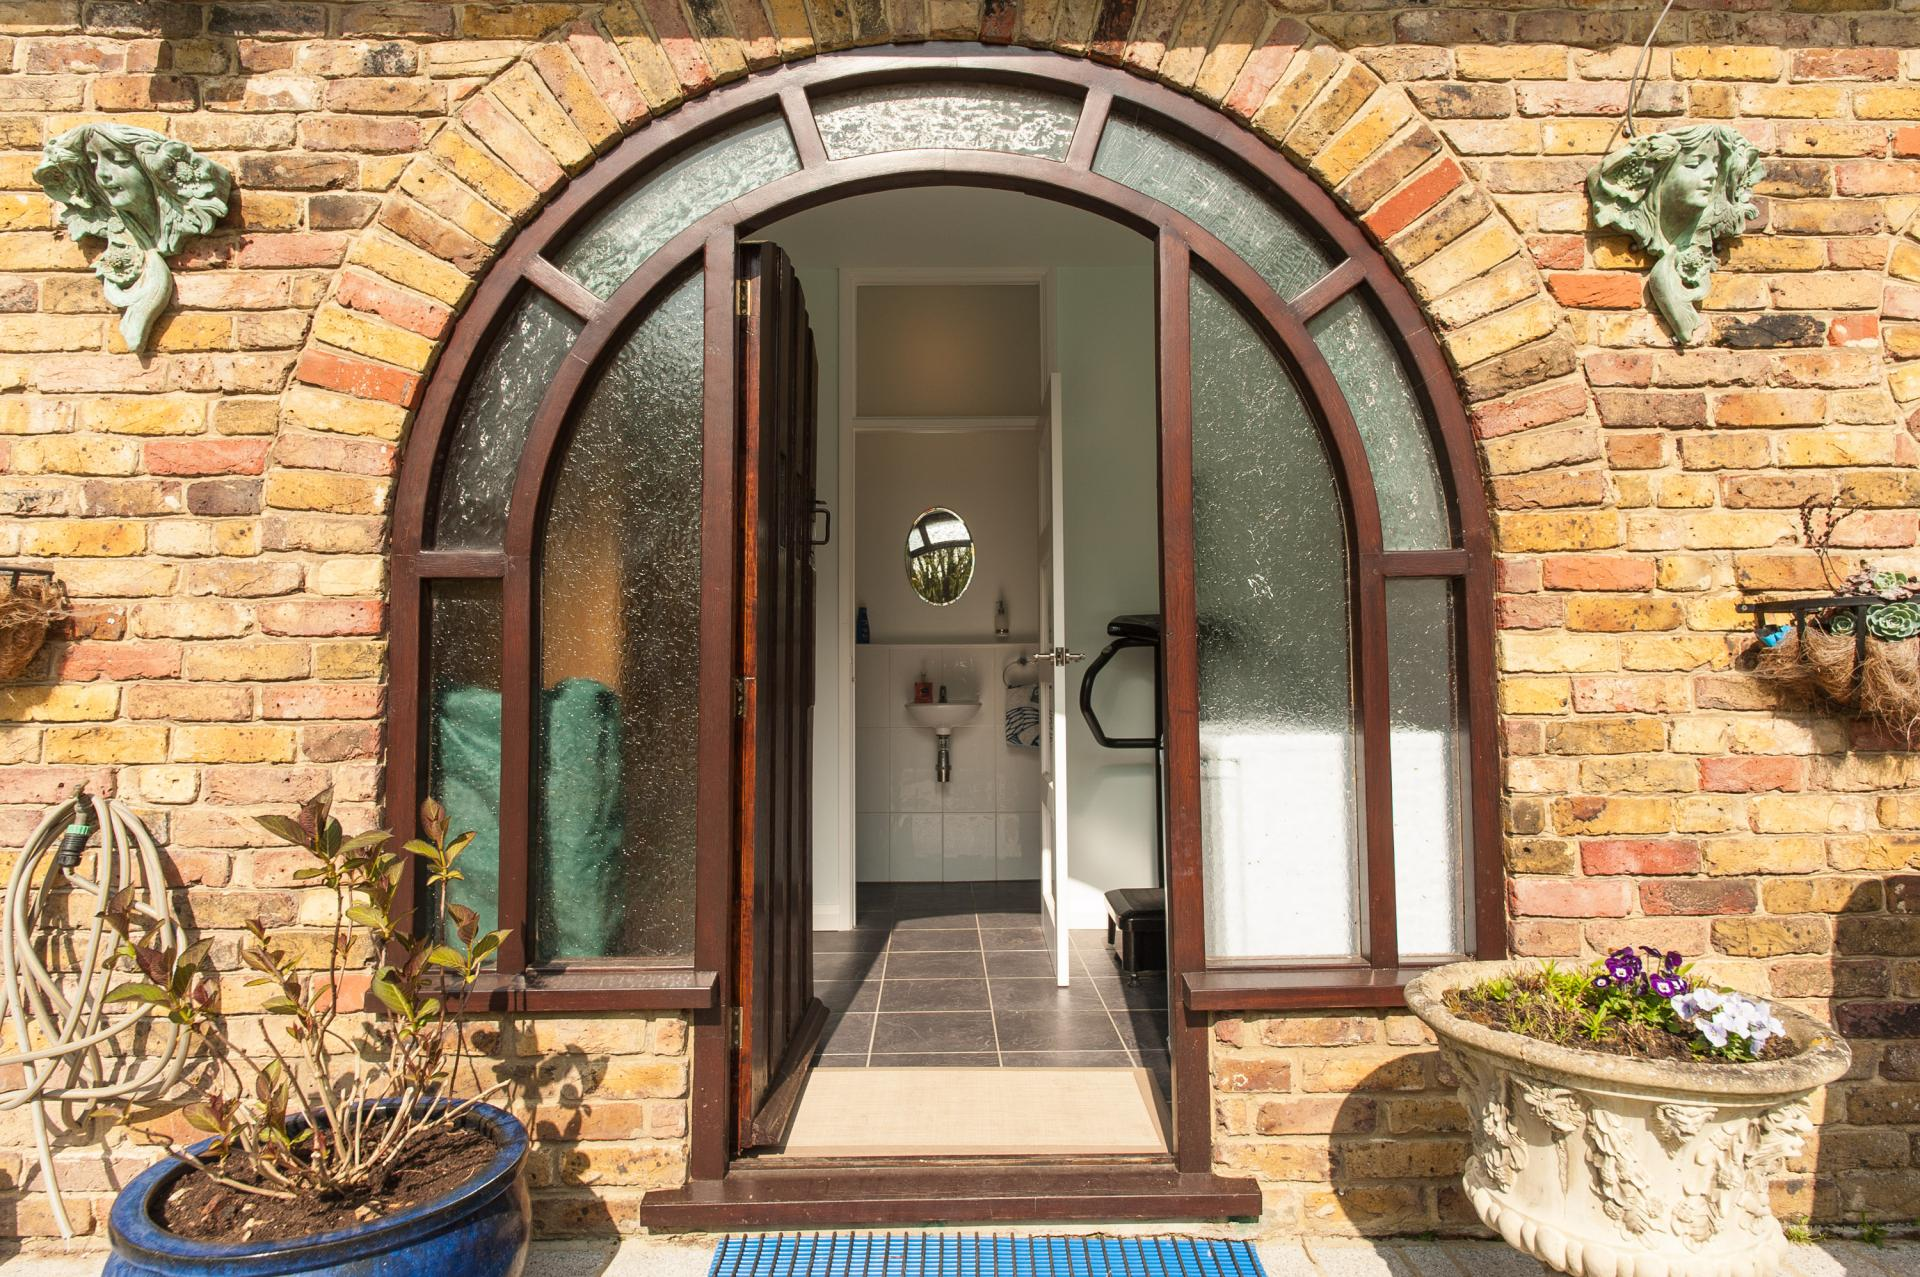 4 Bedroom House For Sale In Wraysbury